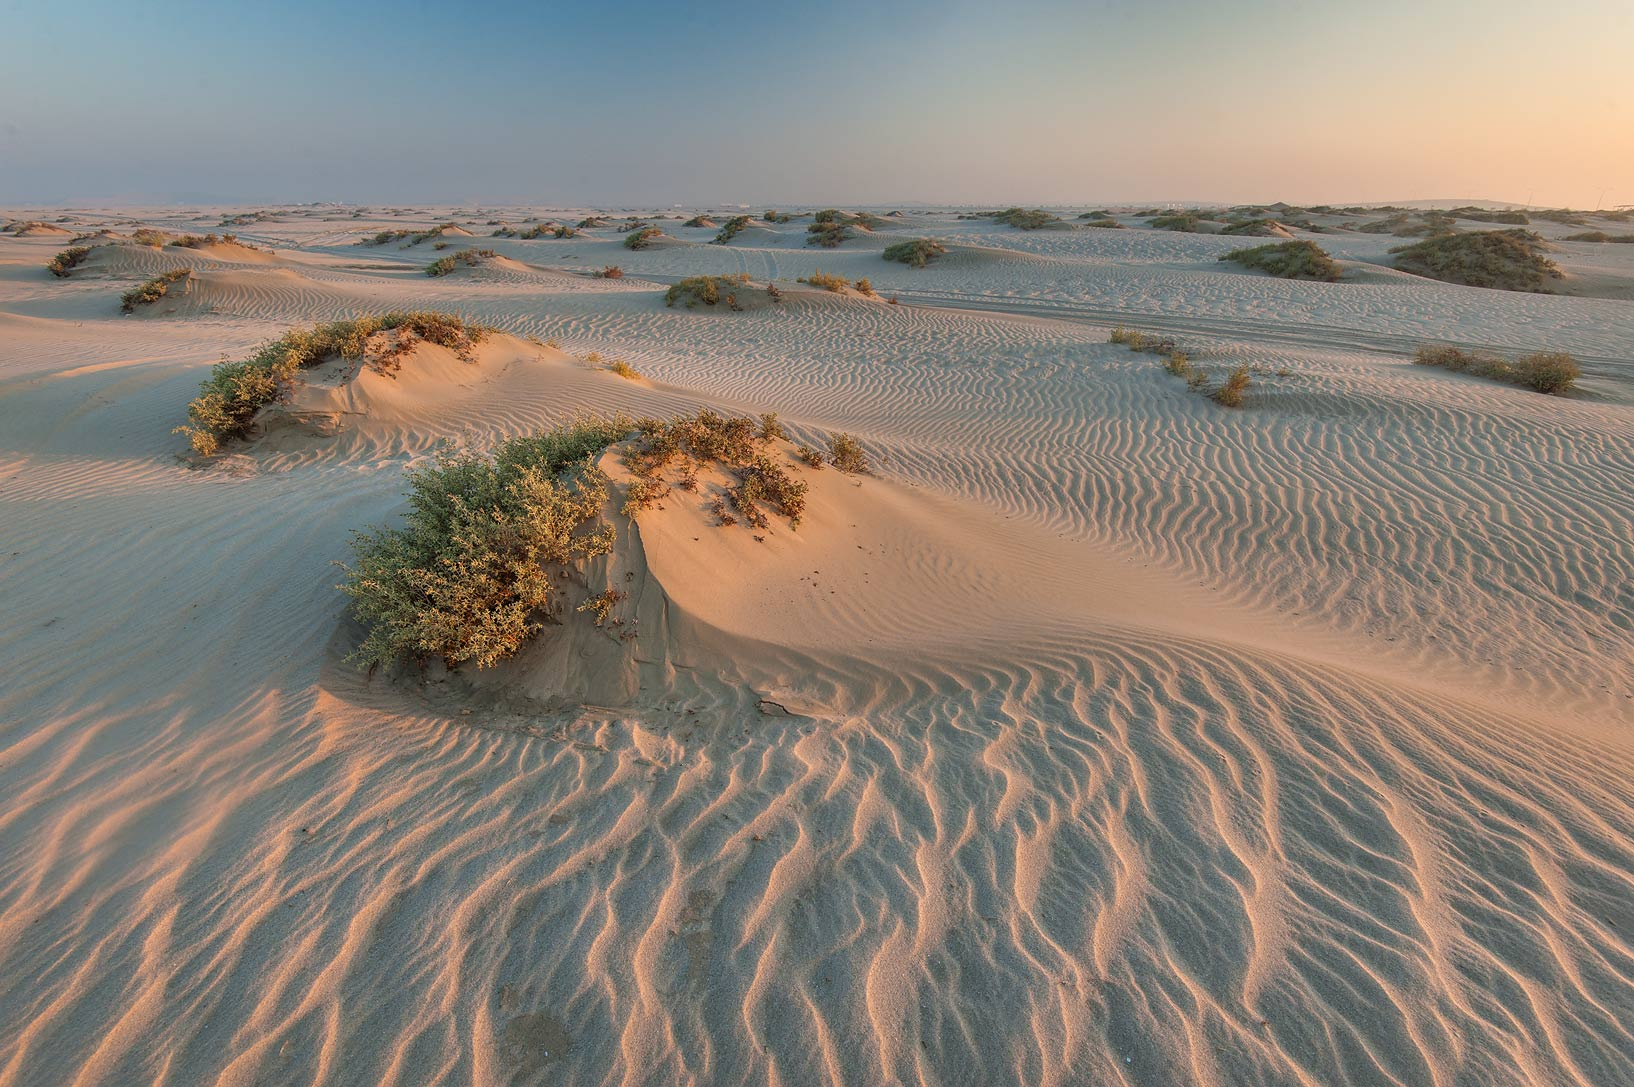 Sand mounds with plants of Seidlitzia rosmarinus...Resort near Mesaieed. Southern Qatar